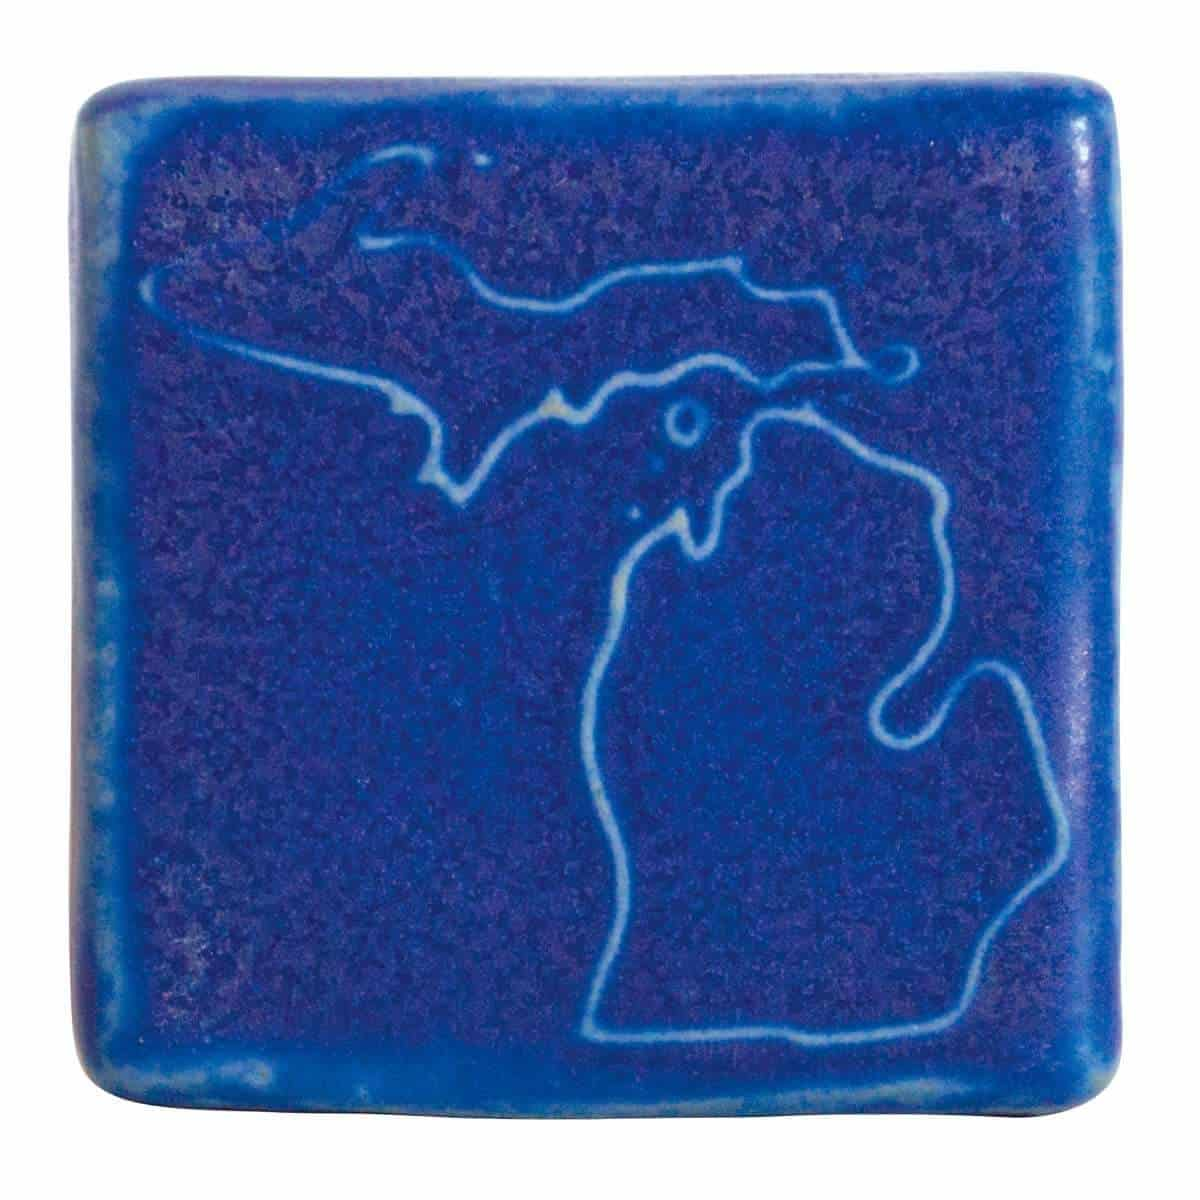 Pewabic Michigan Outline Tile - an ultimate michigan gift idea